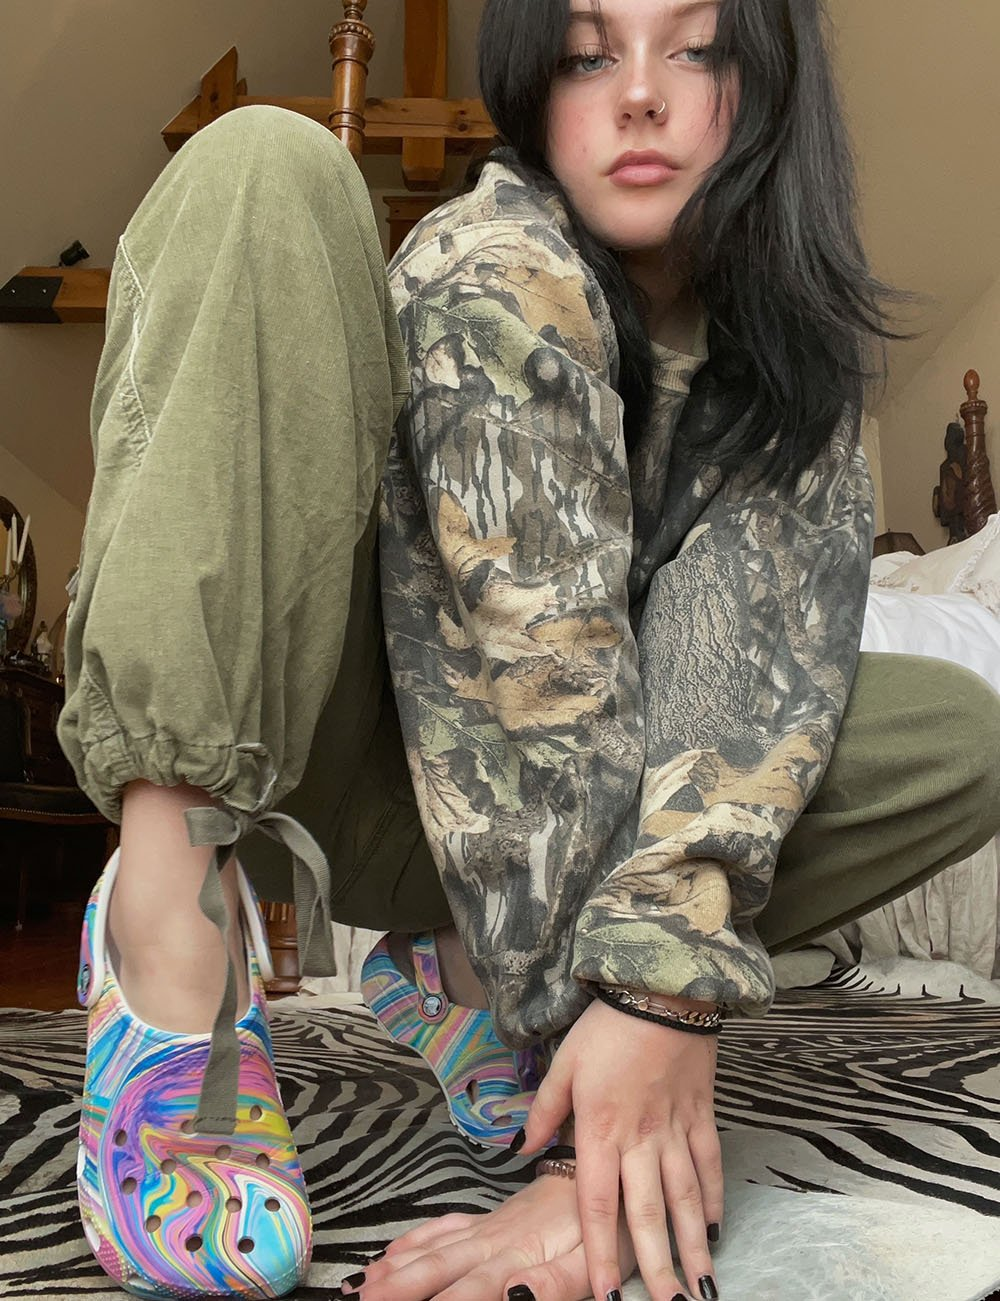 Girl wearing marbled pastel-color Crocs with an all camouflage outfit.